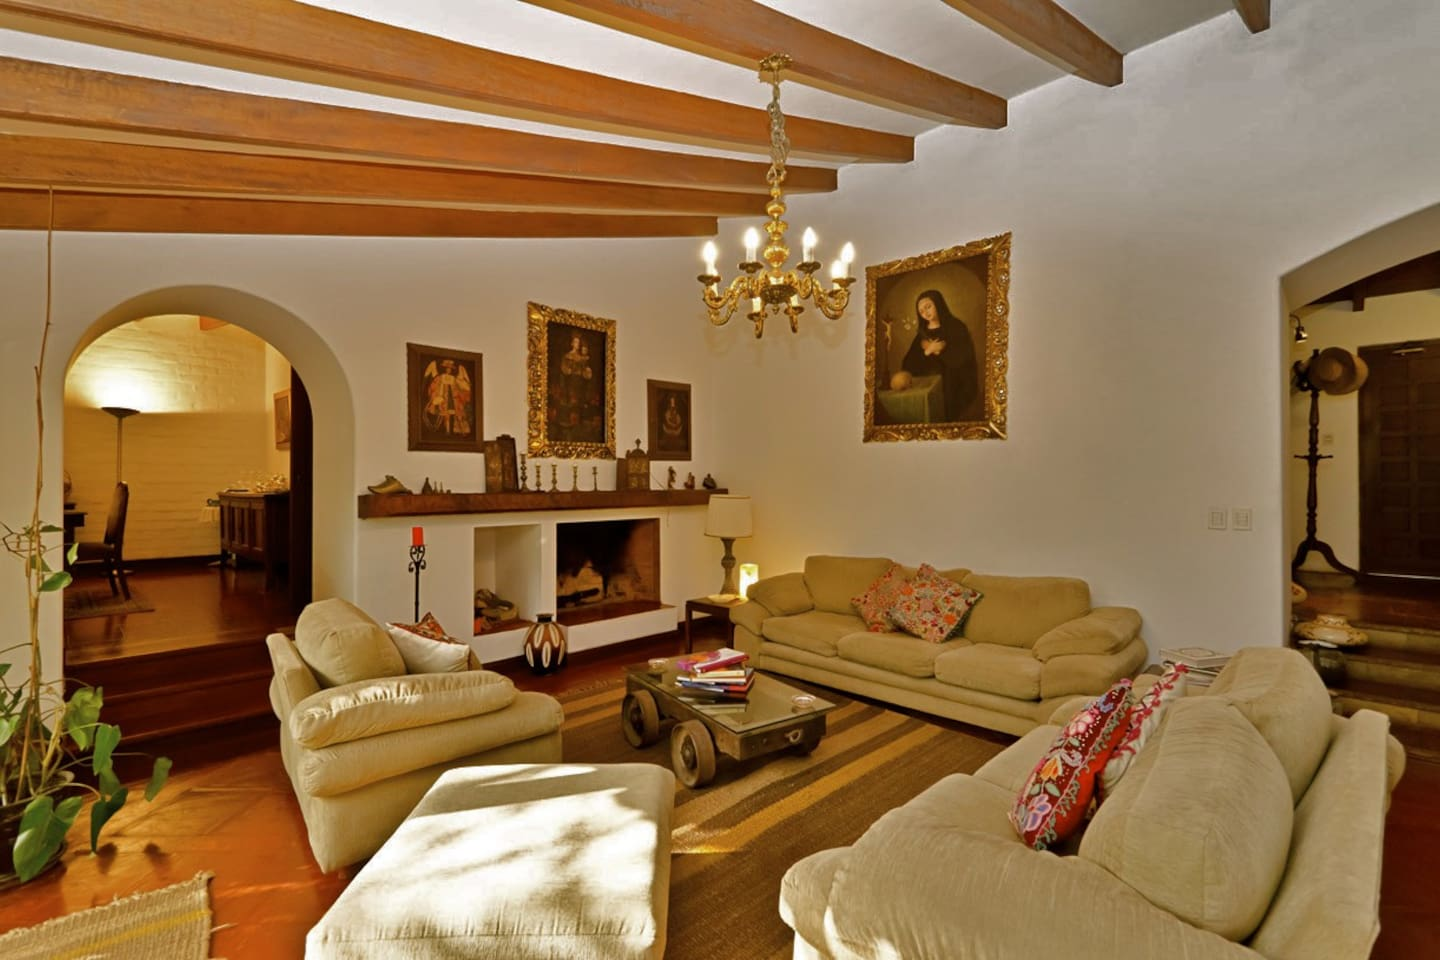 The central living room